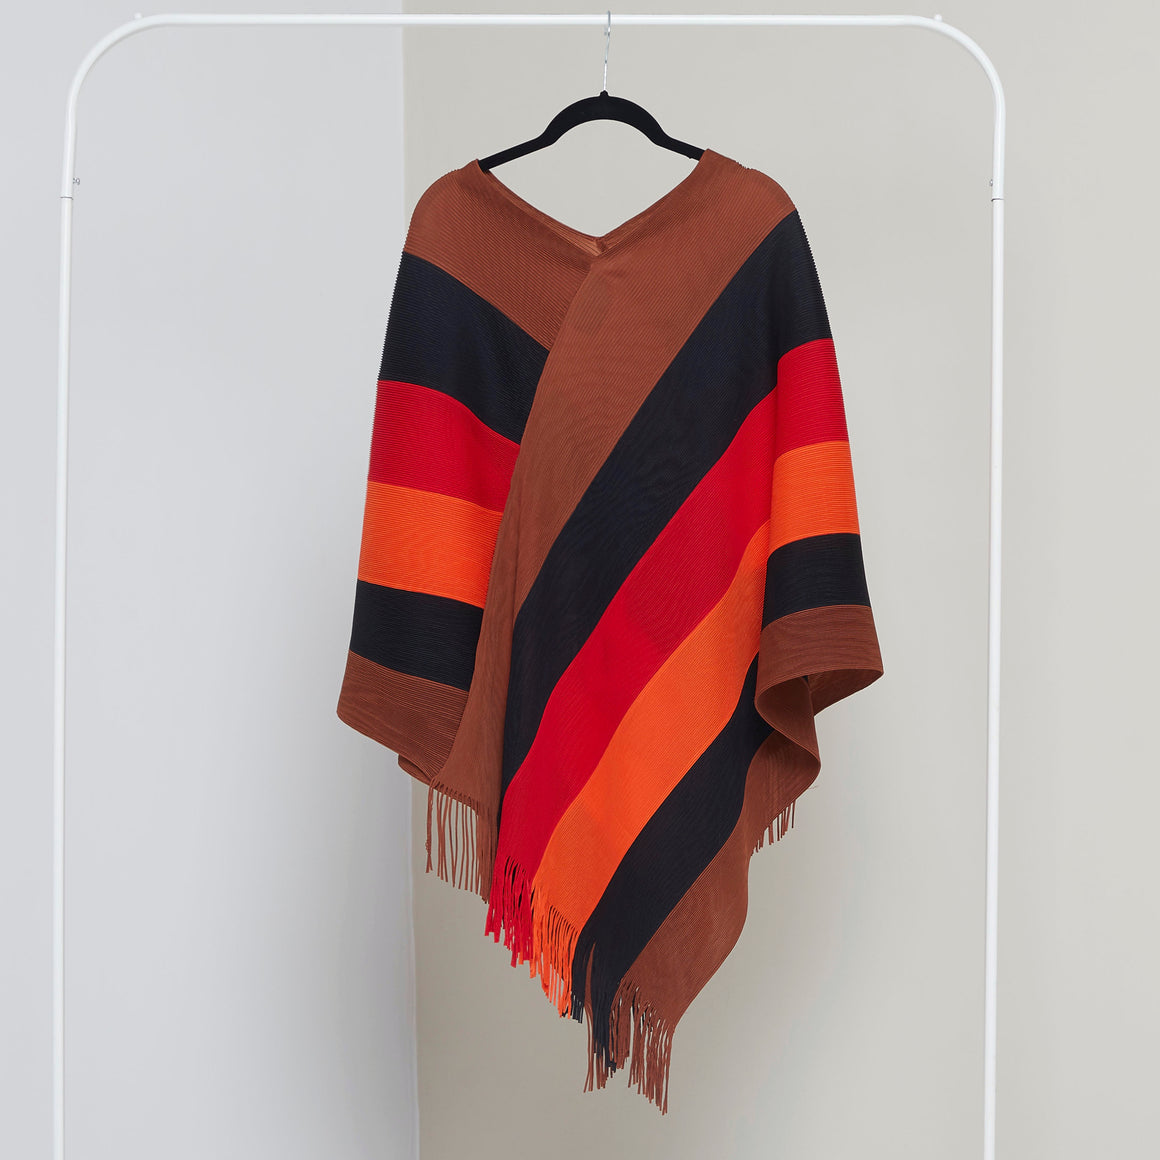 Poncho Top - Brown, Black, Red & Orange